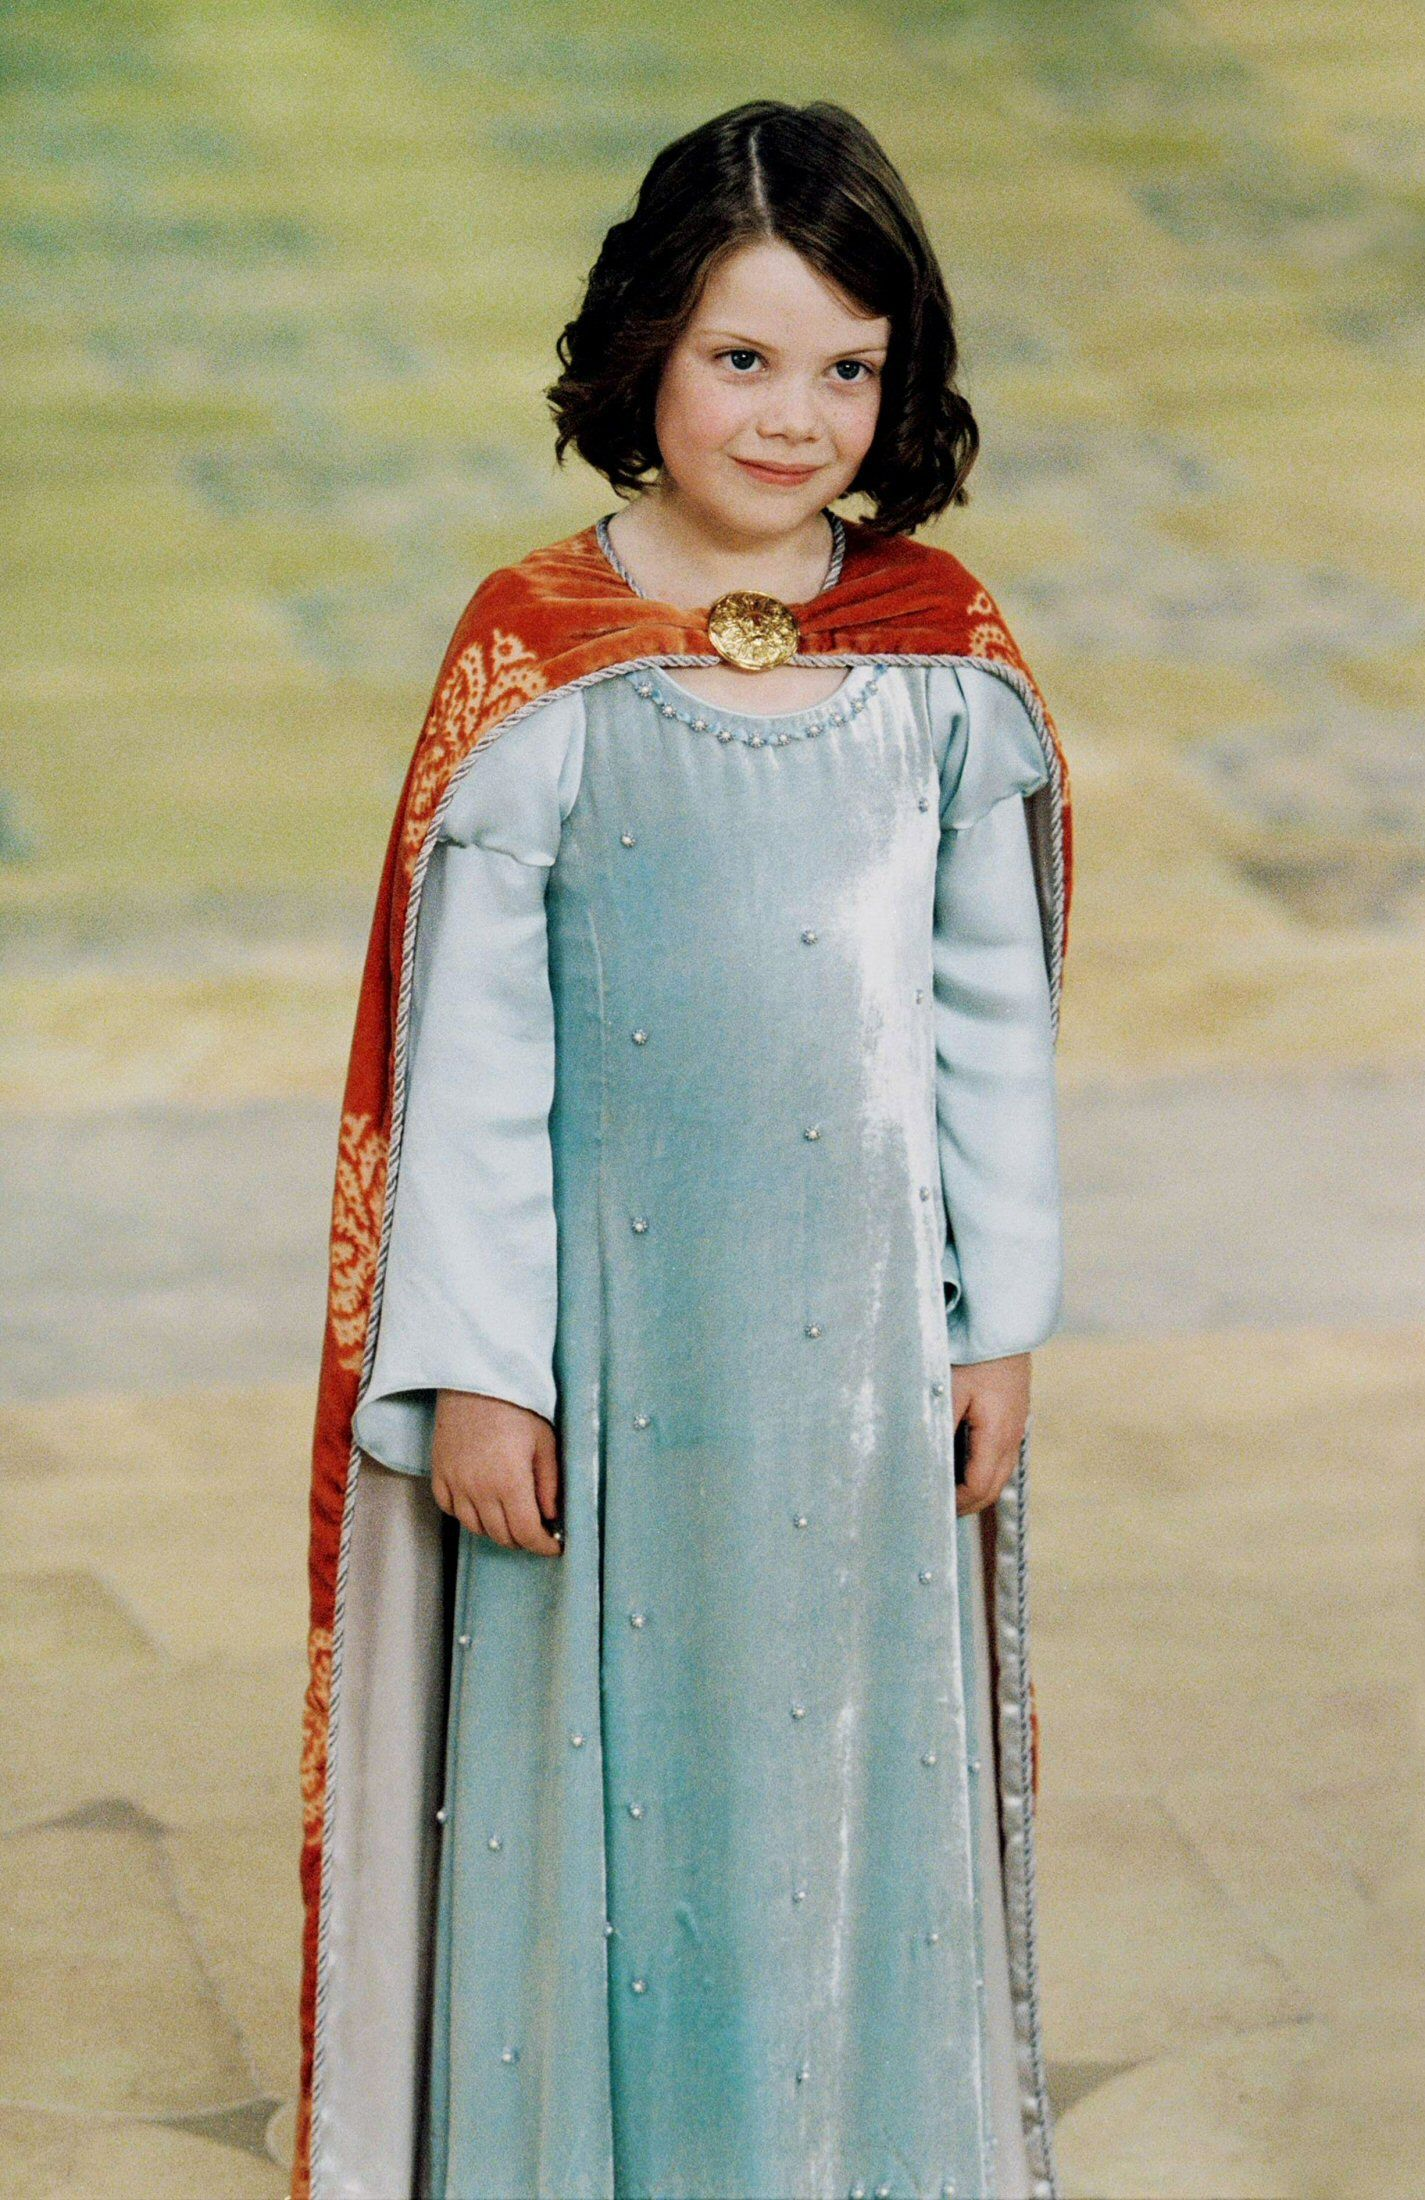 Lucy Pevensie fro Prince Casoian movie costume for 16.5